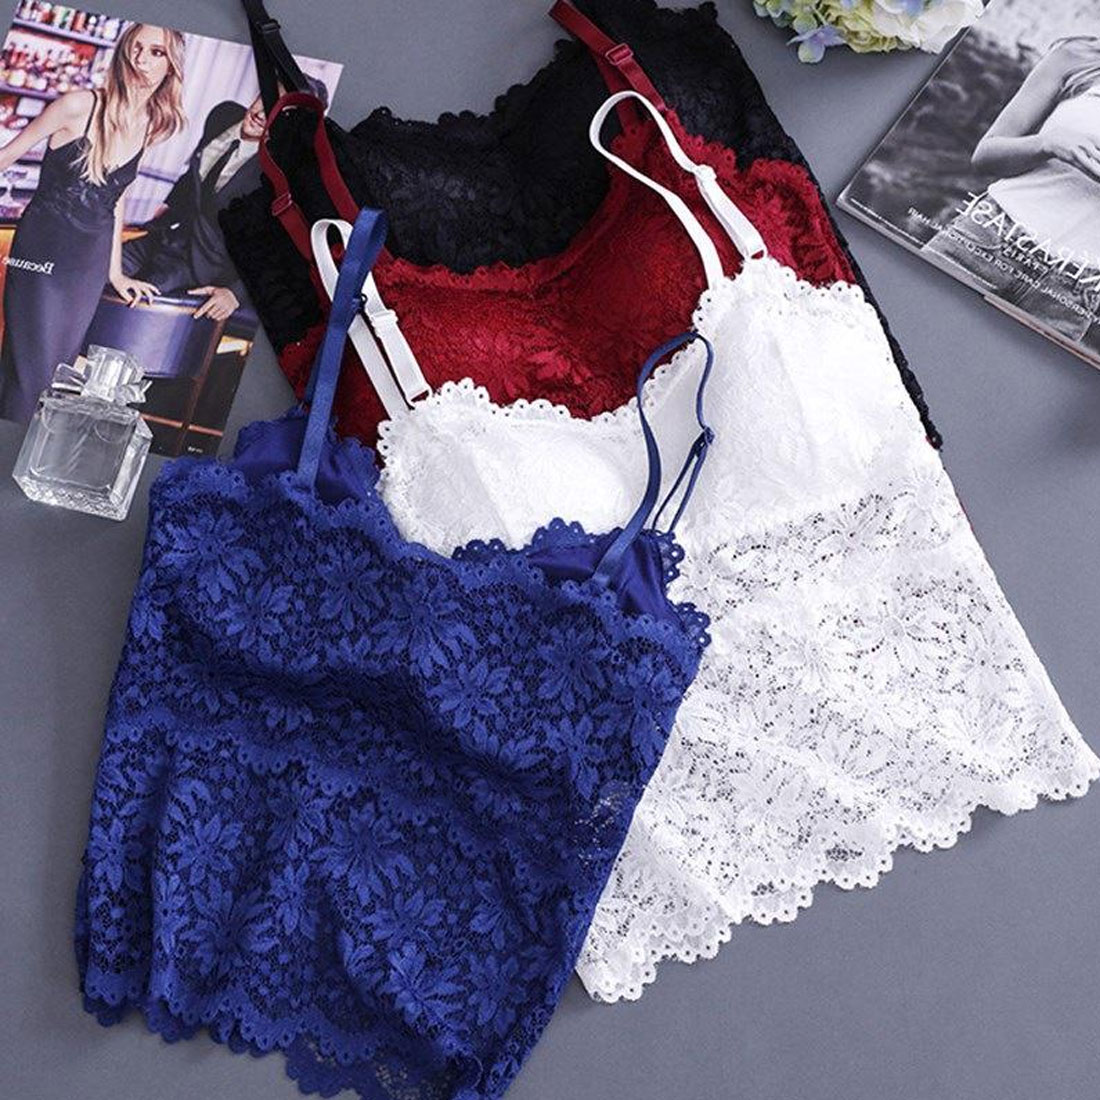 Women Lace Tube Top Flower Camisoles Sexy Crop Top Female Tanks Top Soft Removable Padded V Neck Transparent Lace Bra in Bras from Underwear Sleepwears